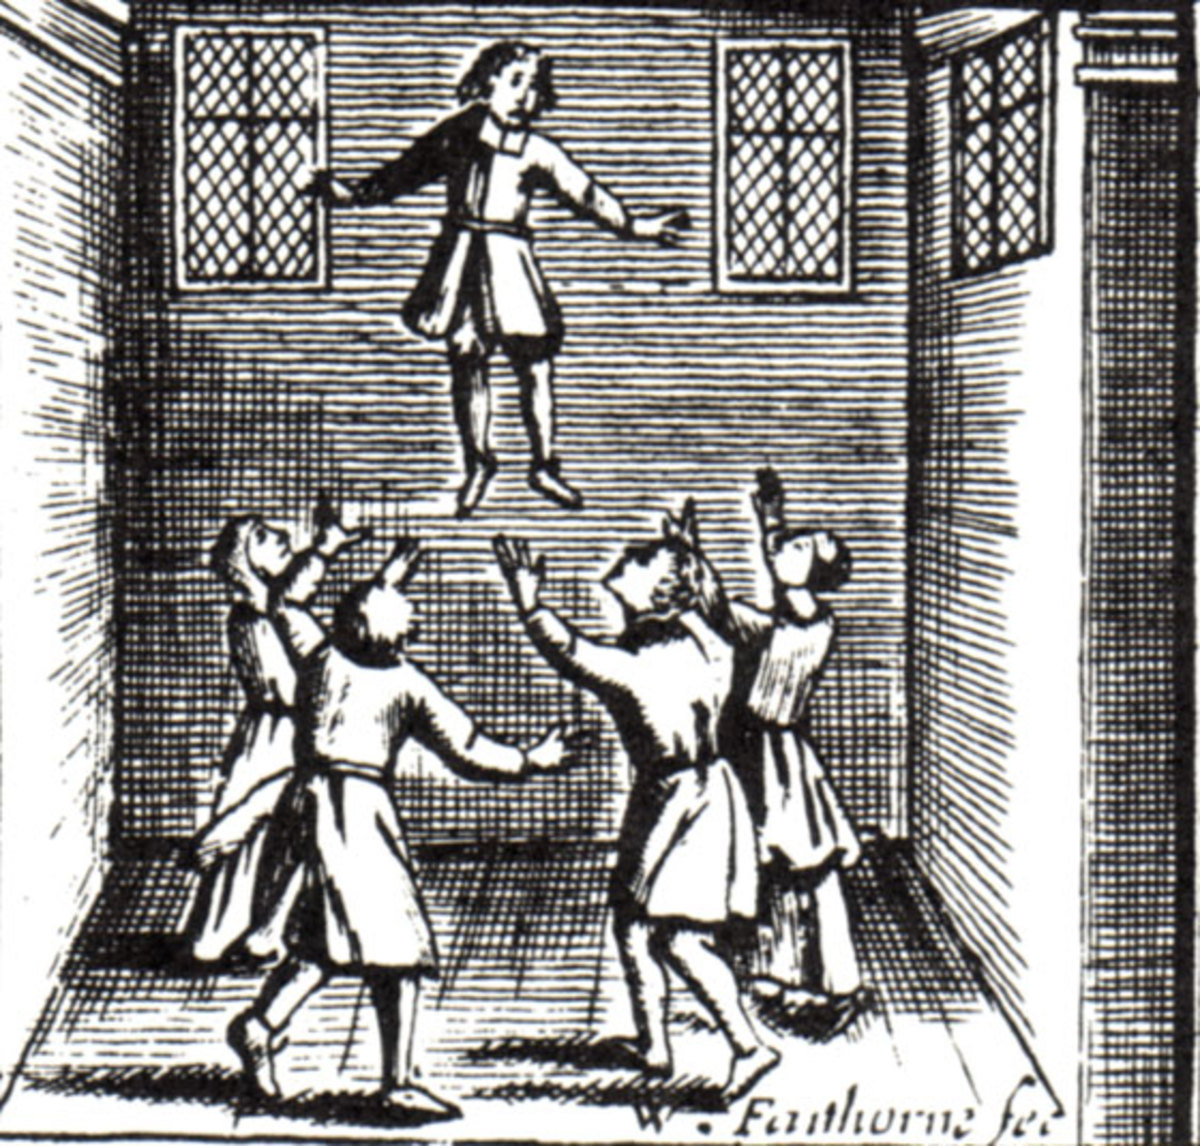 A child levitating due to witchcraft.